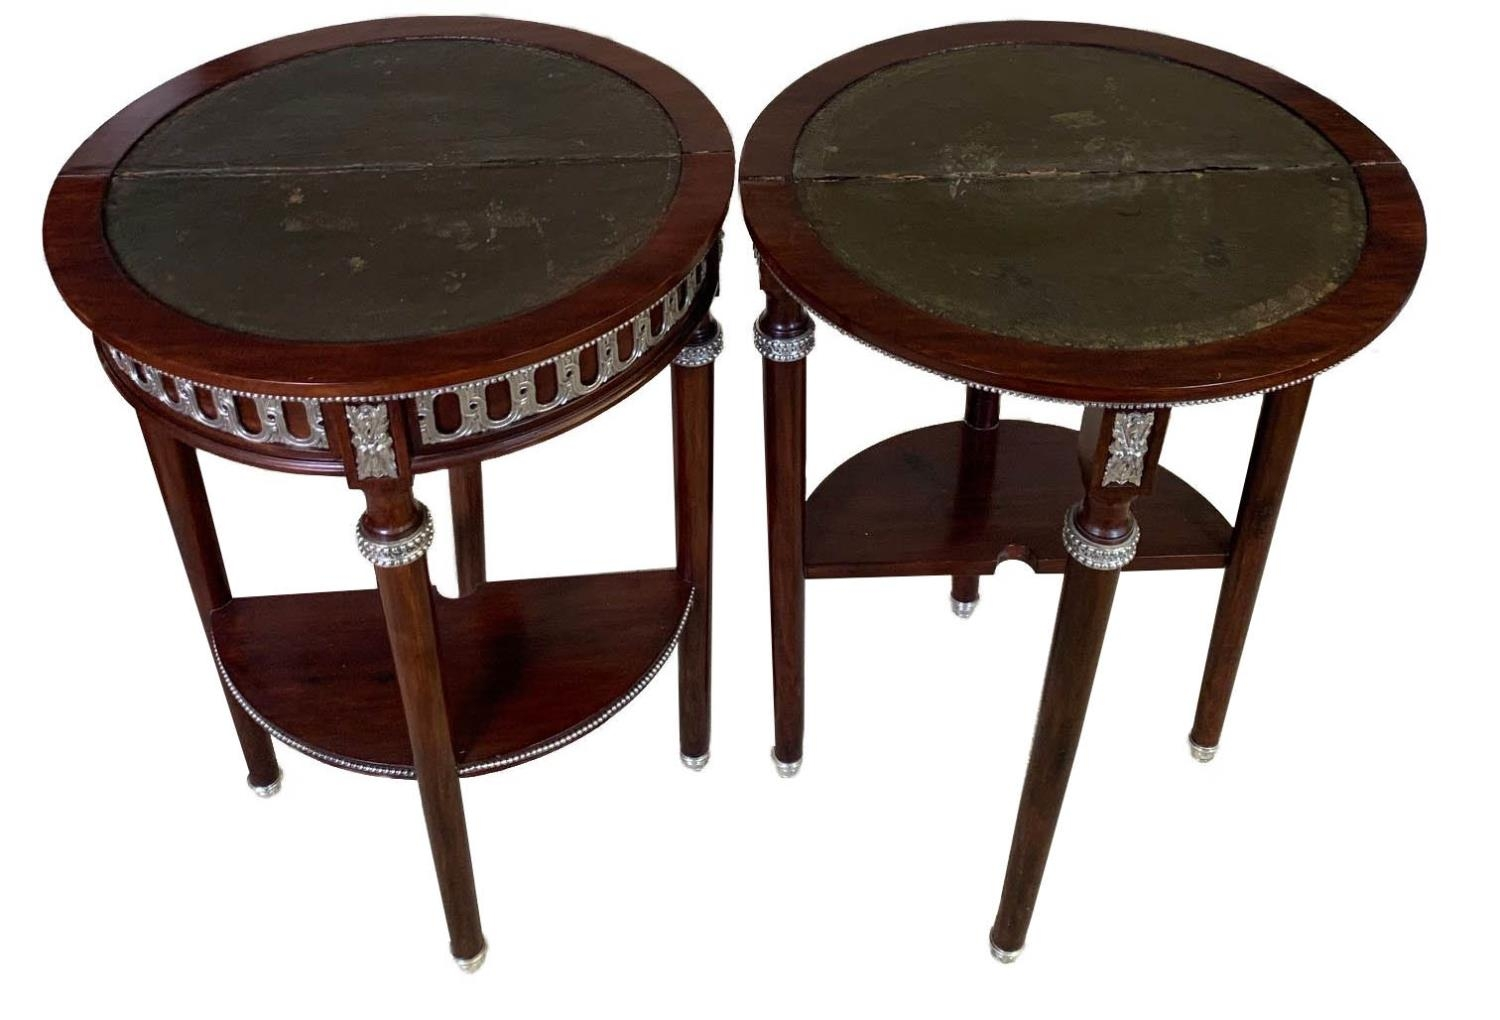 A PAIR OF EARLY 20TH CENTURY LOUIS XVI STYLE AMBOYNA AND MAHOGANY DEMILUNE CARD TABLES The hinge - Image 2 of 3